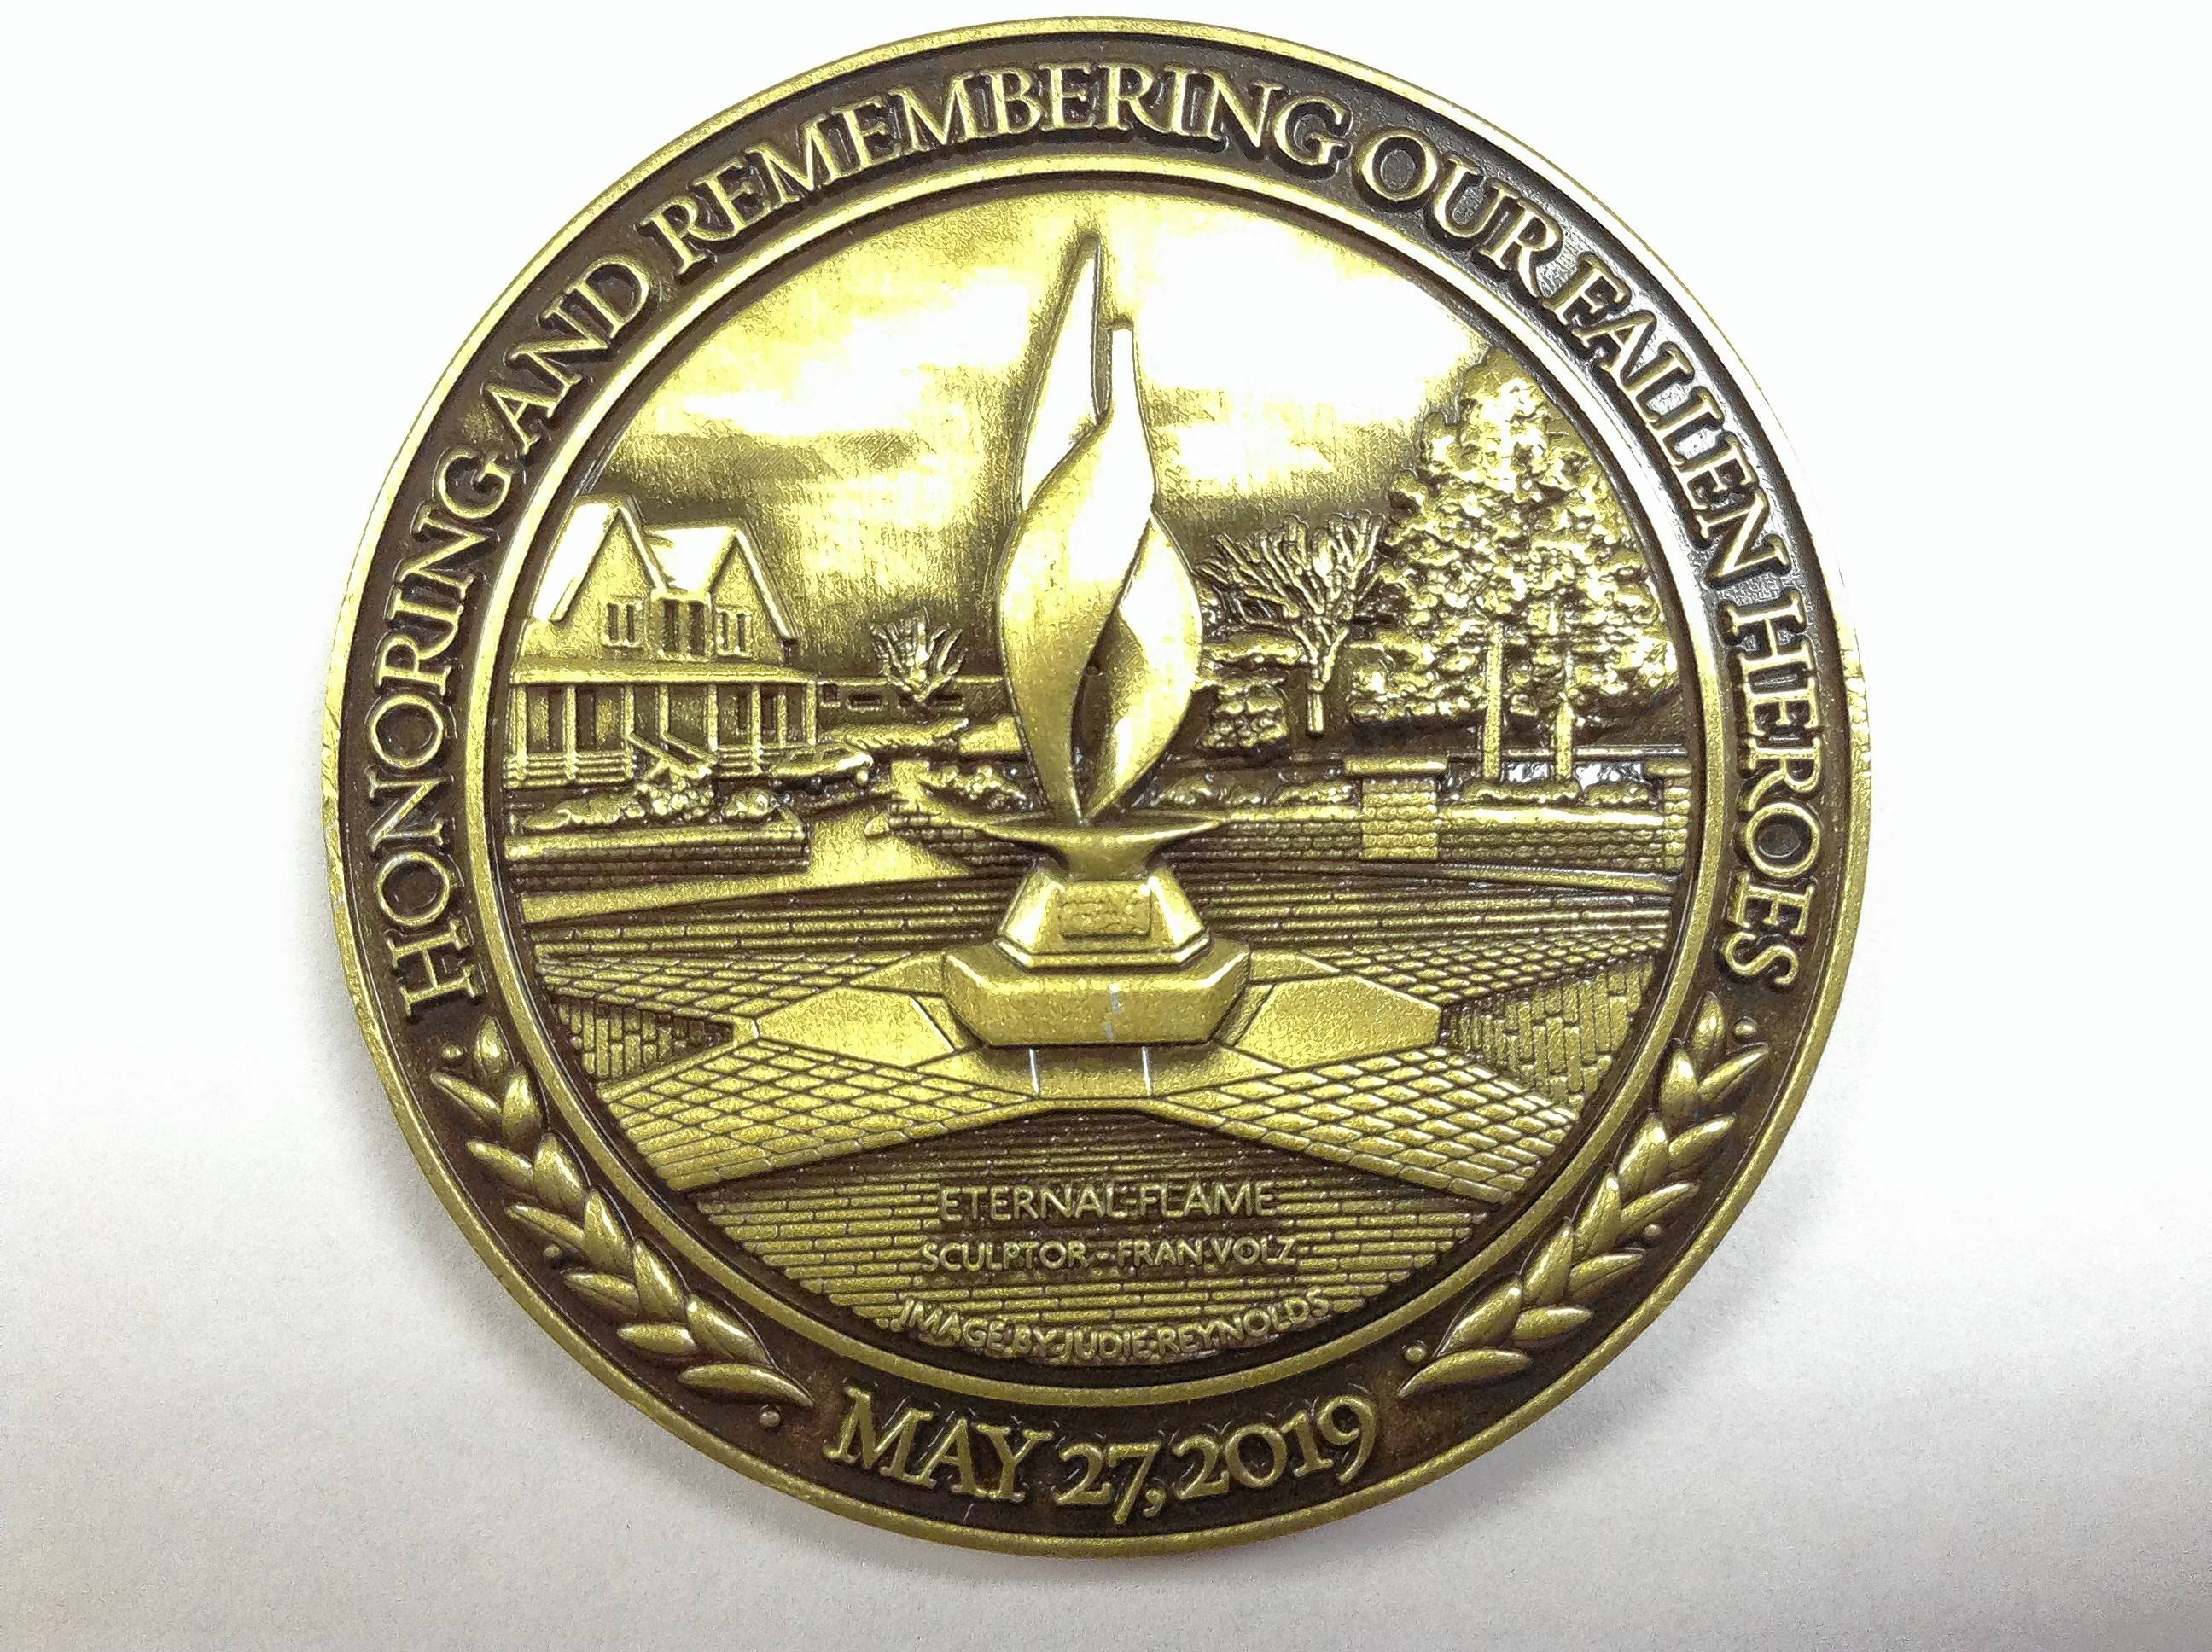 A commemorative coin displays the eternal flame sculpture in Arlington Heights' Memorial Park. The coin is being distributed to fallen hero families, veterans, active military and other supporters.